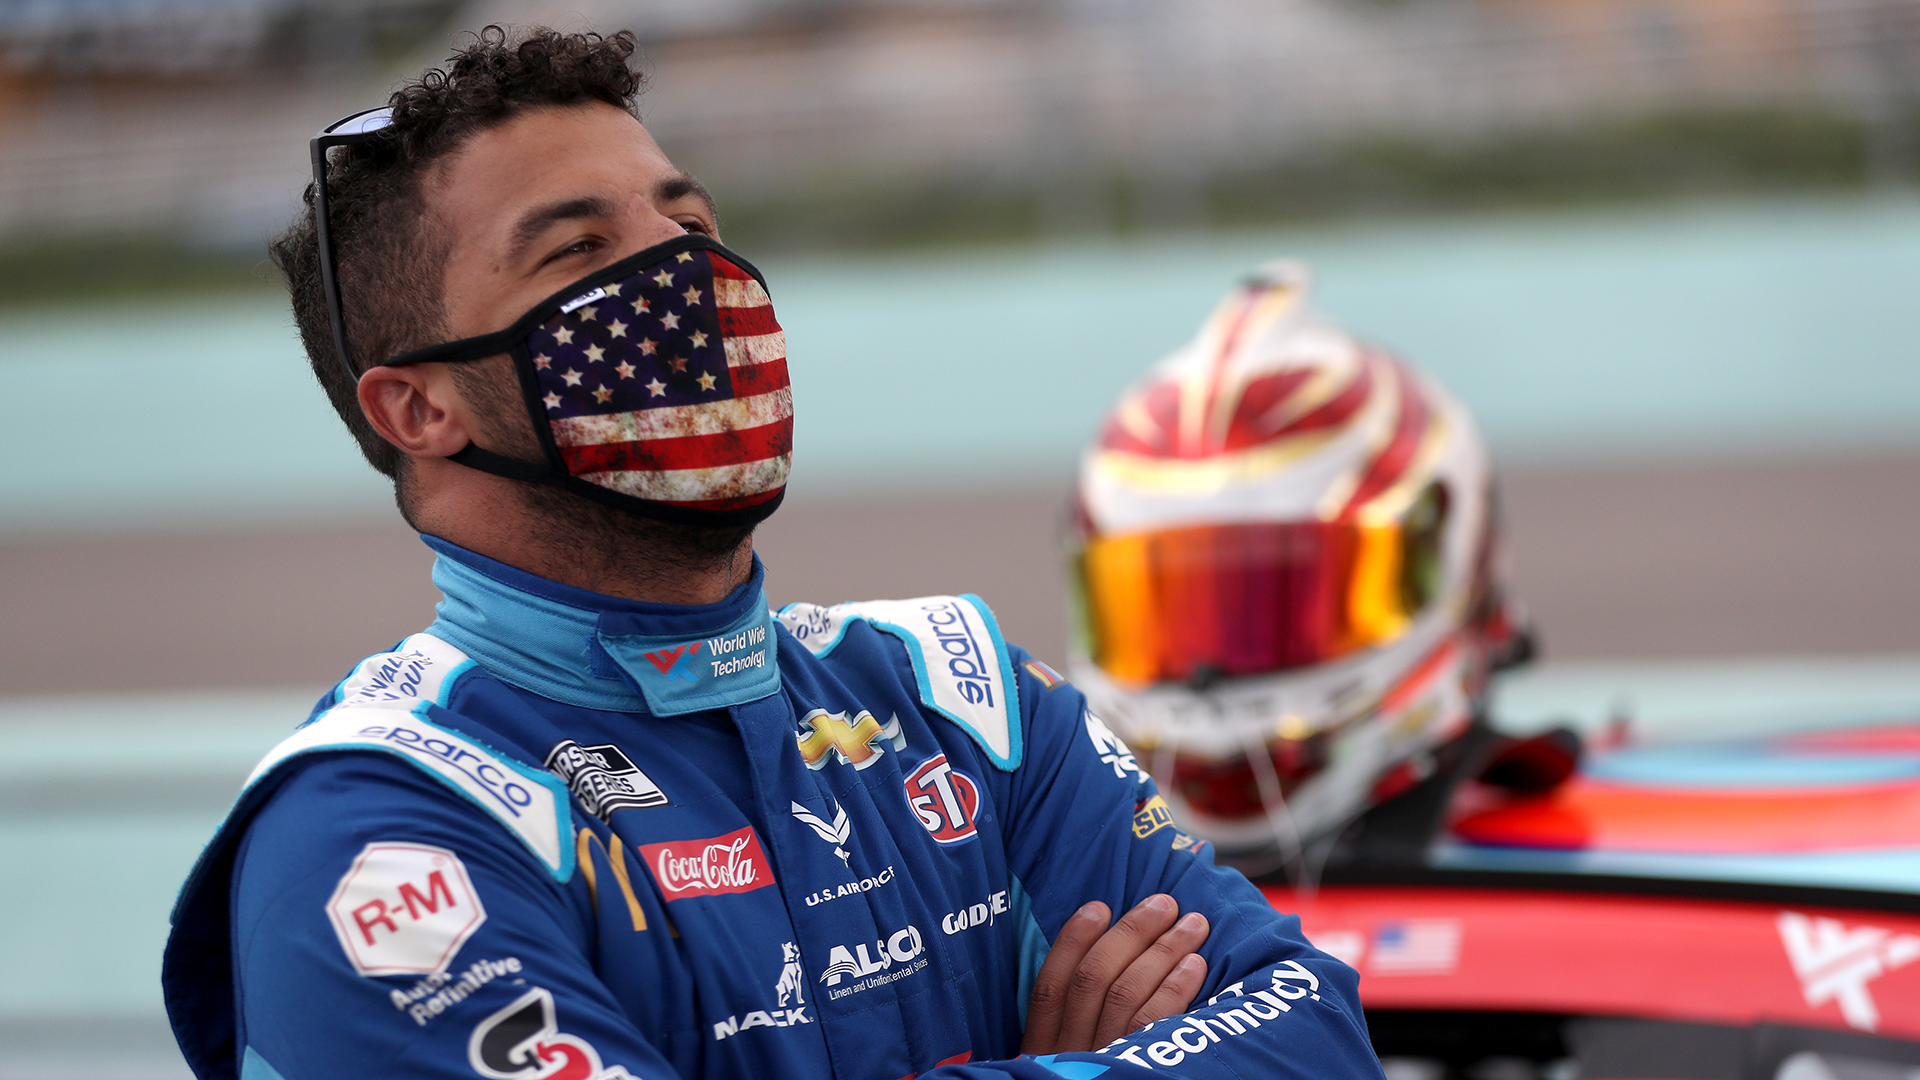 Bubba Wallace's mom says her son has been called N-word by other drivers during racing career